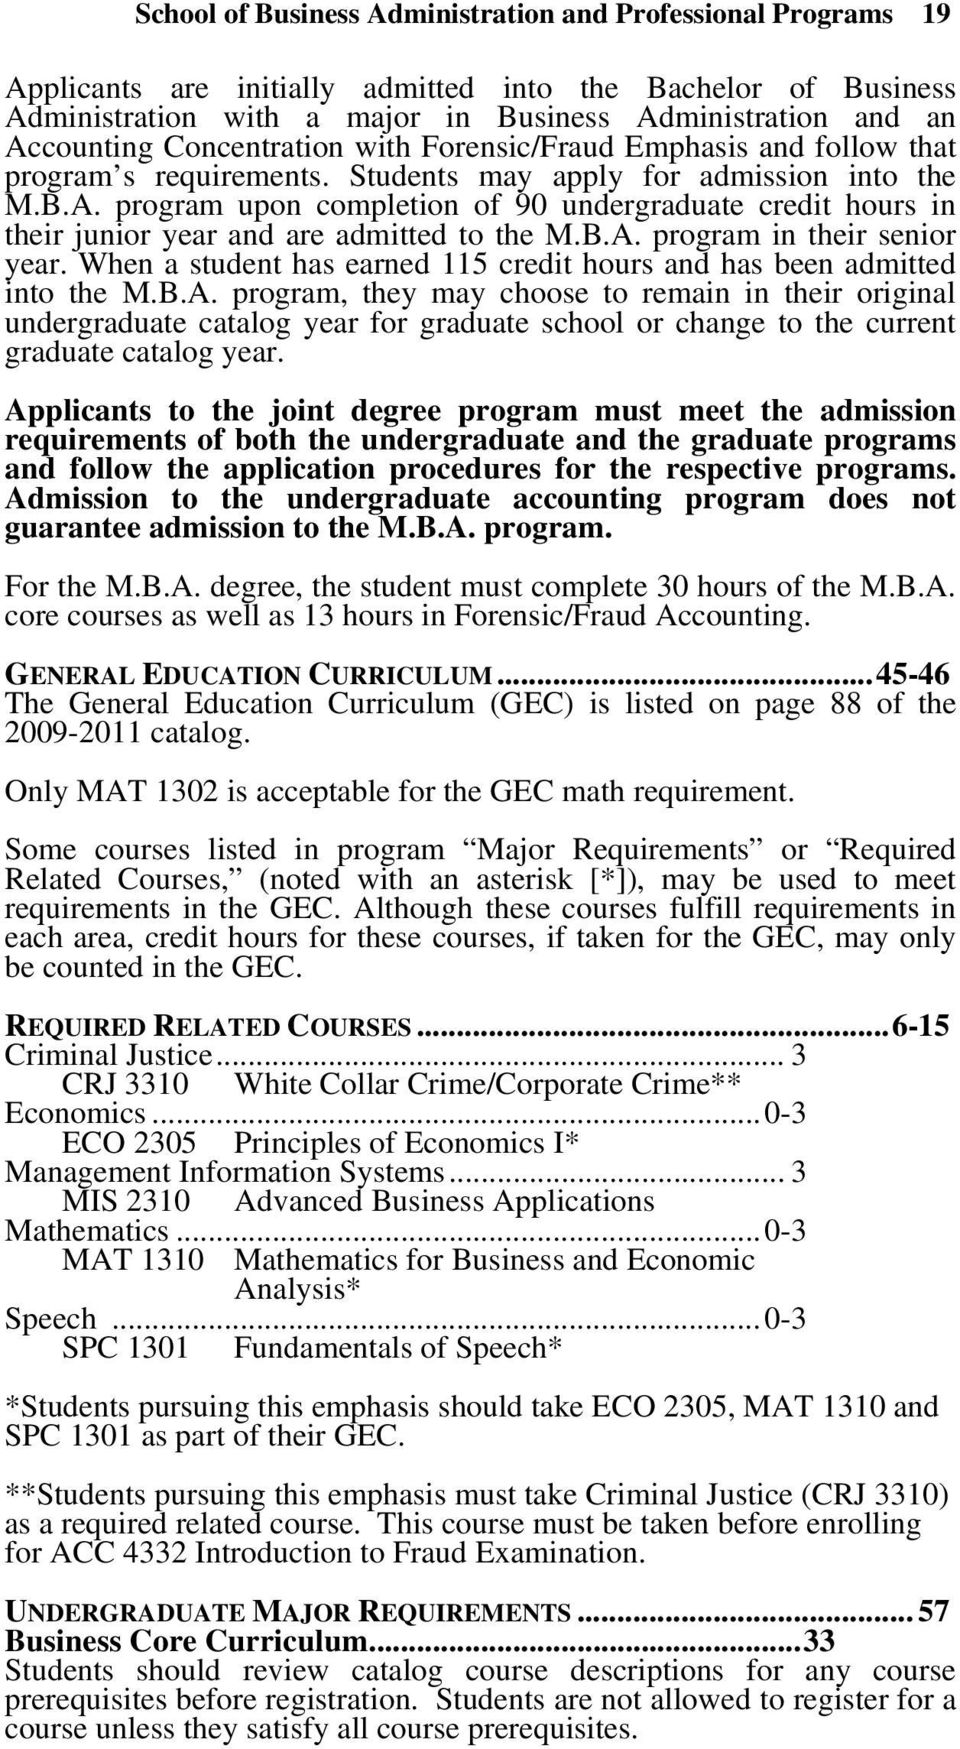 program upon completion of 90 undergraduate credit hours in their junior year and are admitted to the M.B.A. program in their senior year.